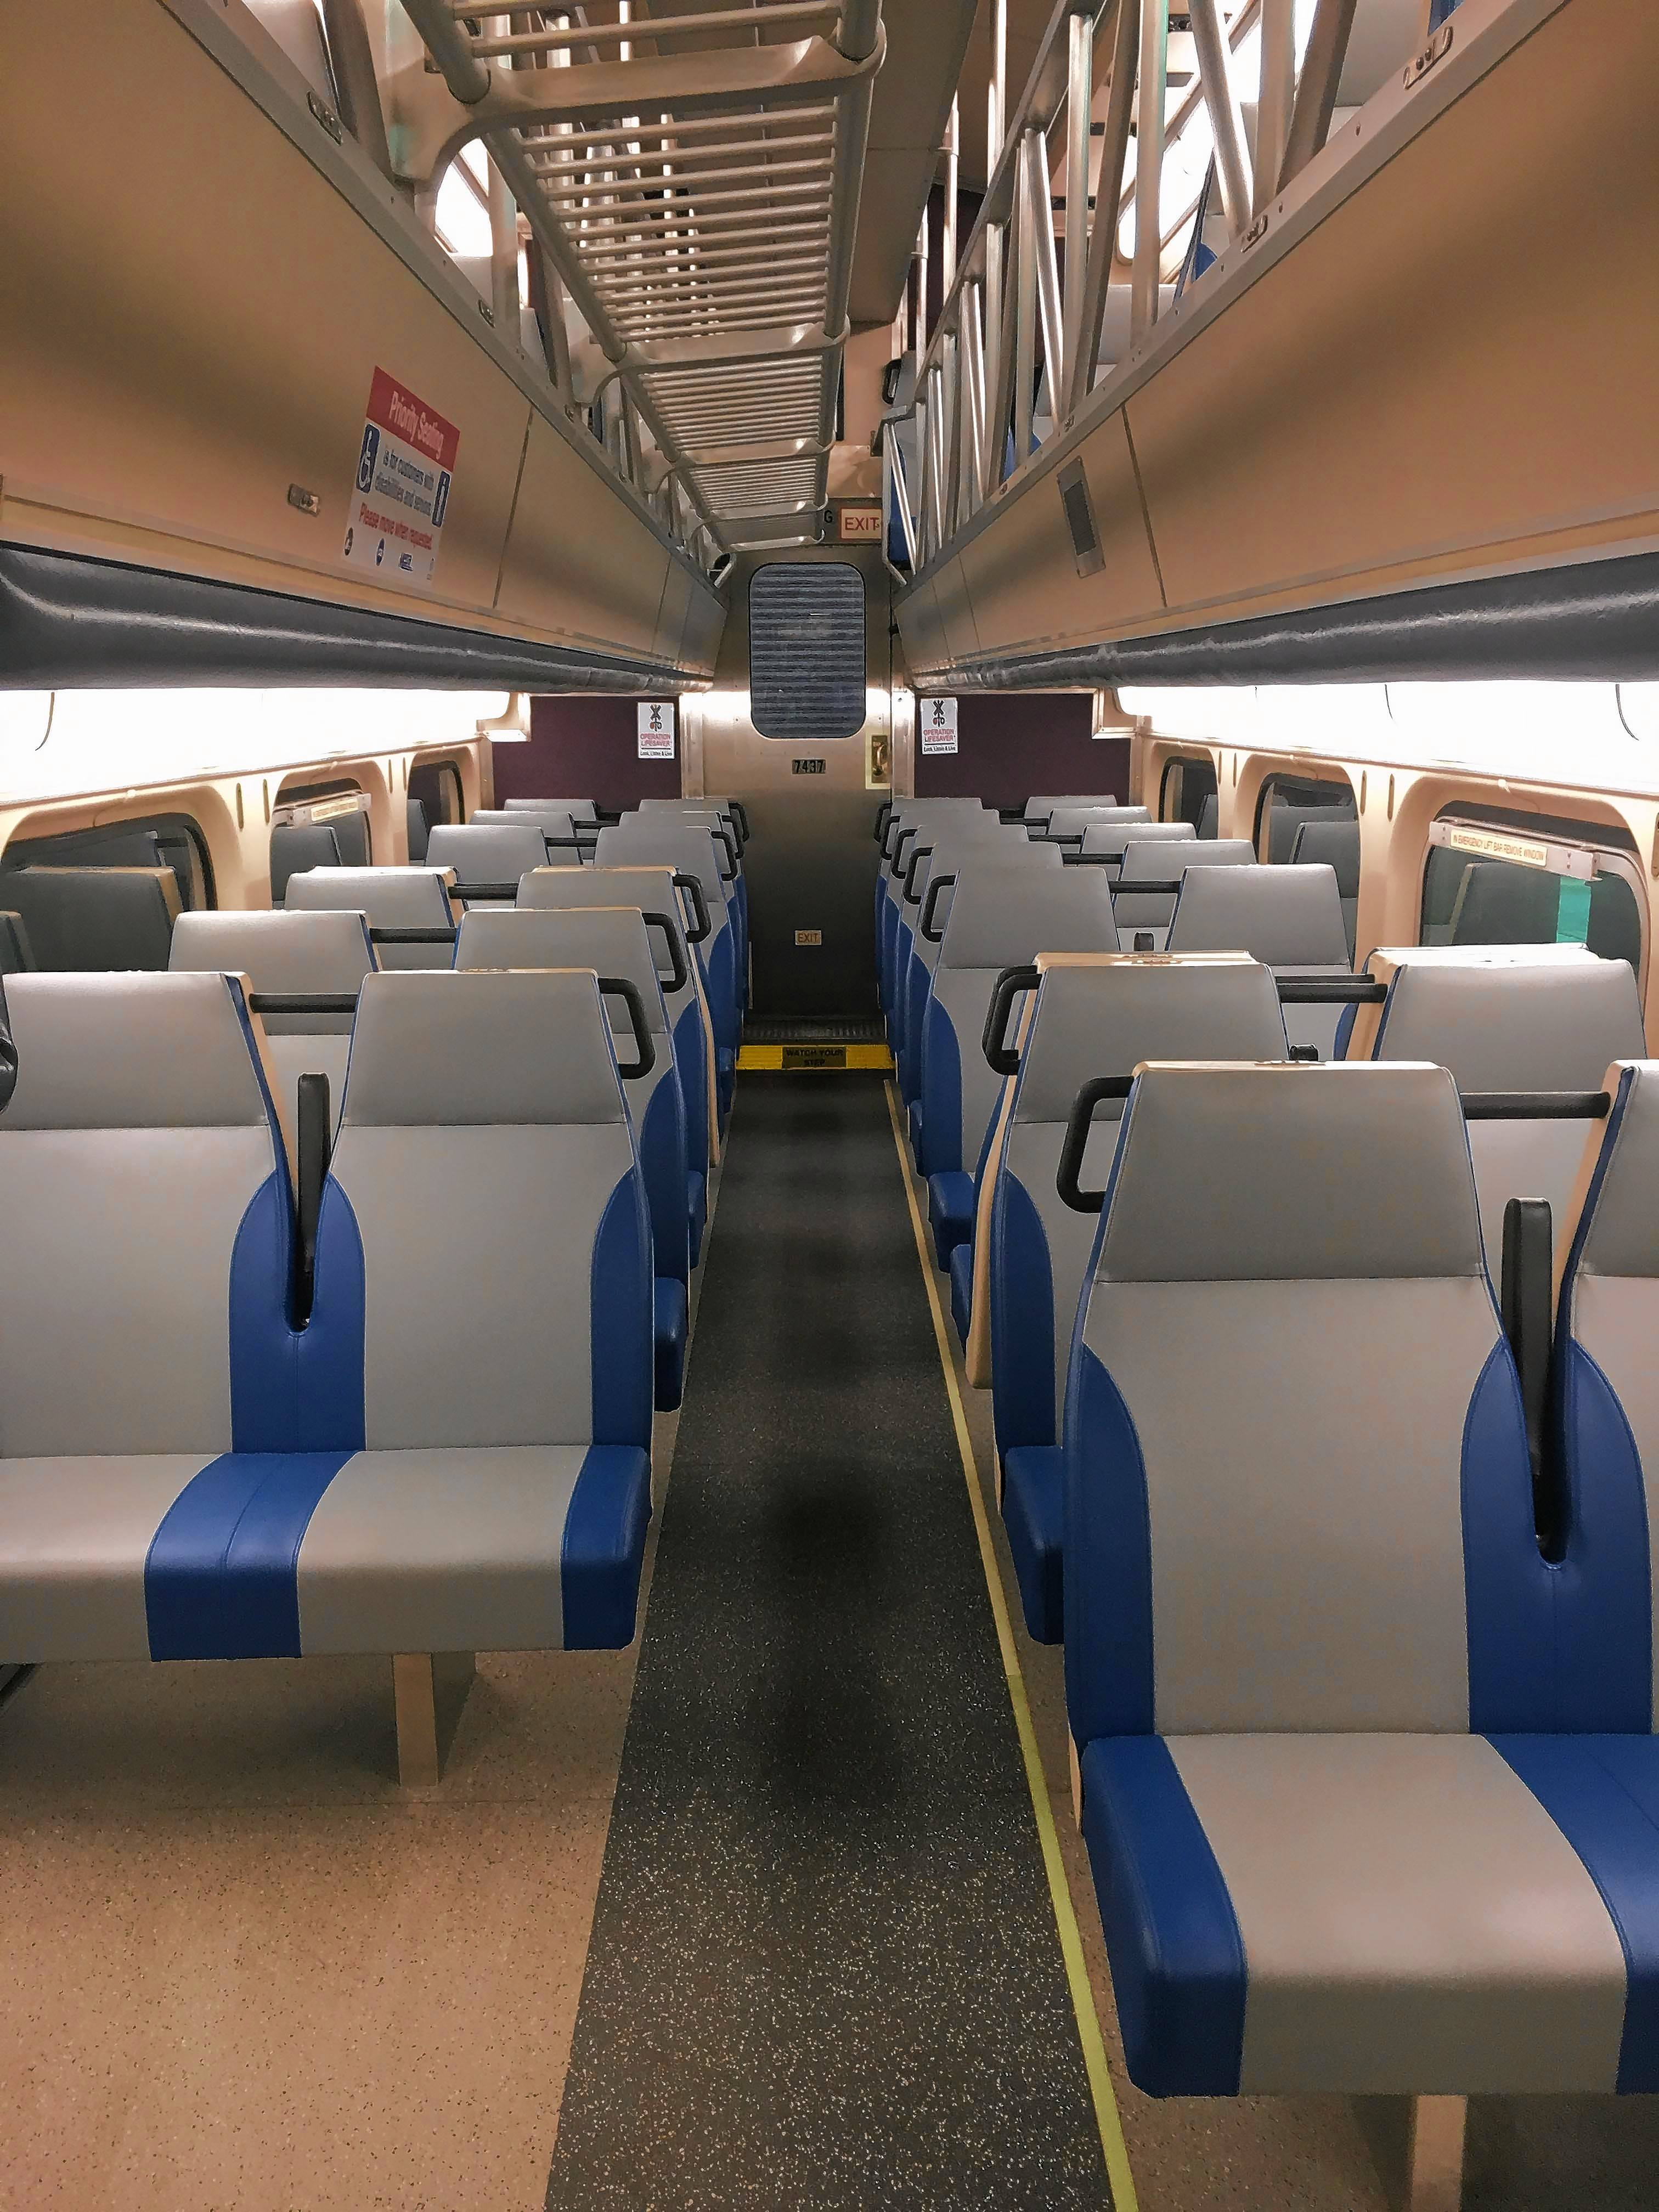 No more seats that flip on Metra trains?